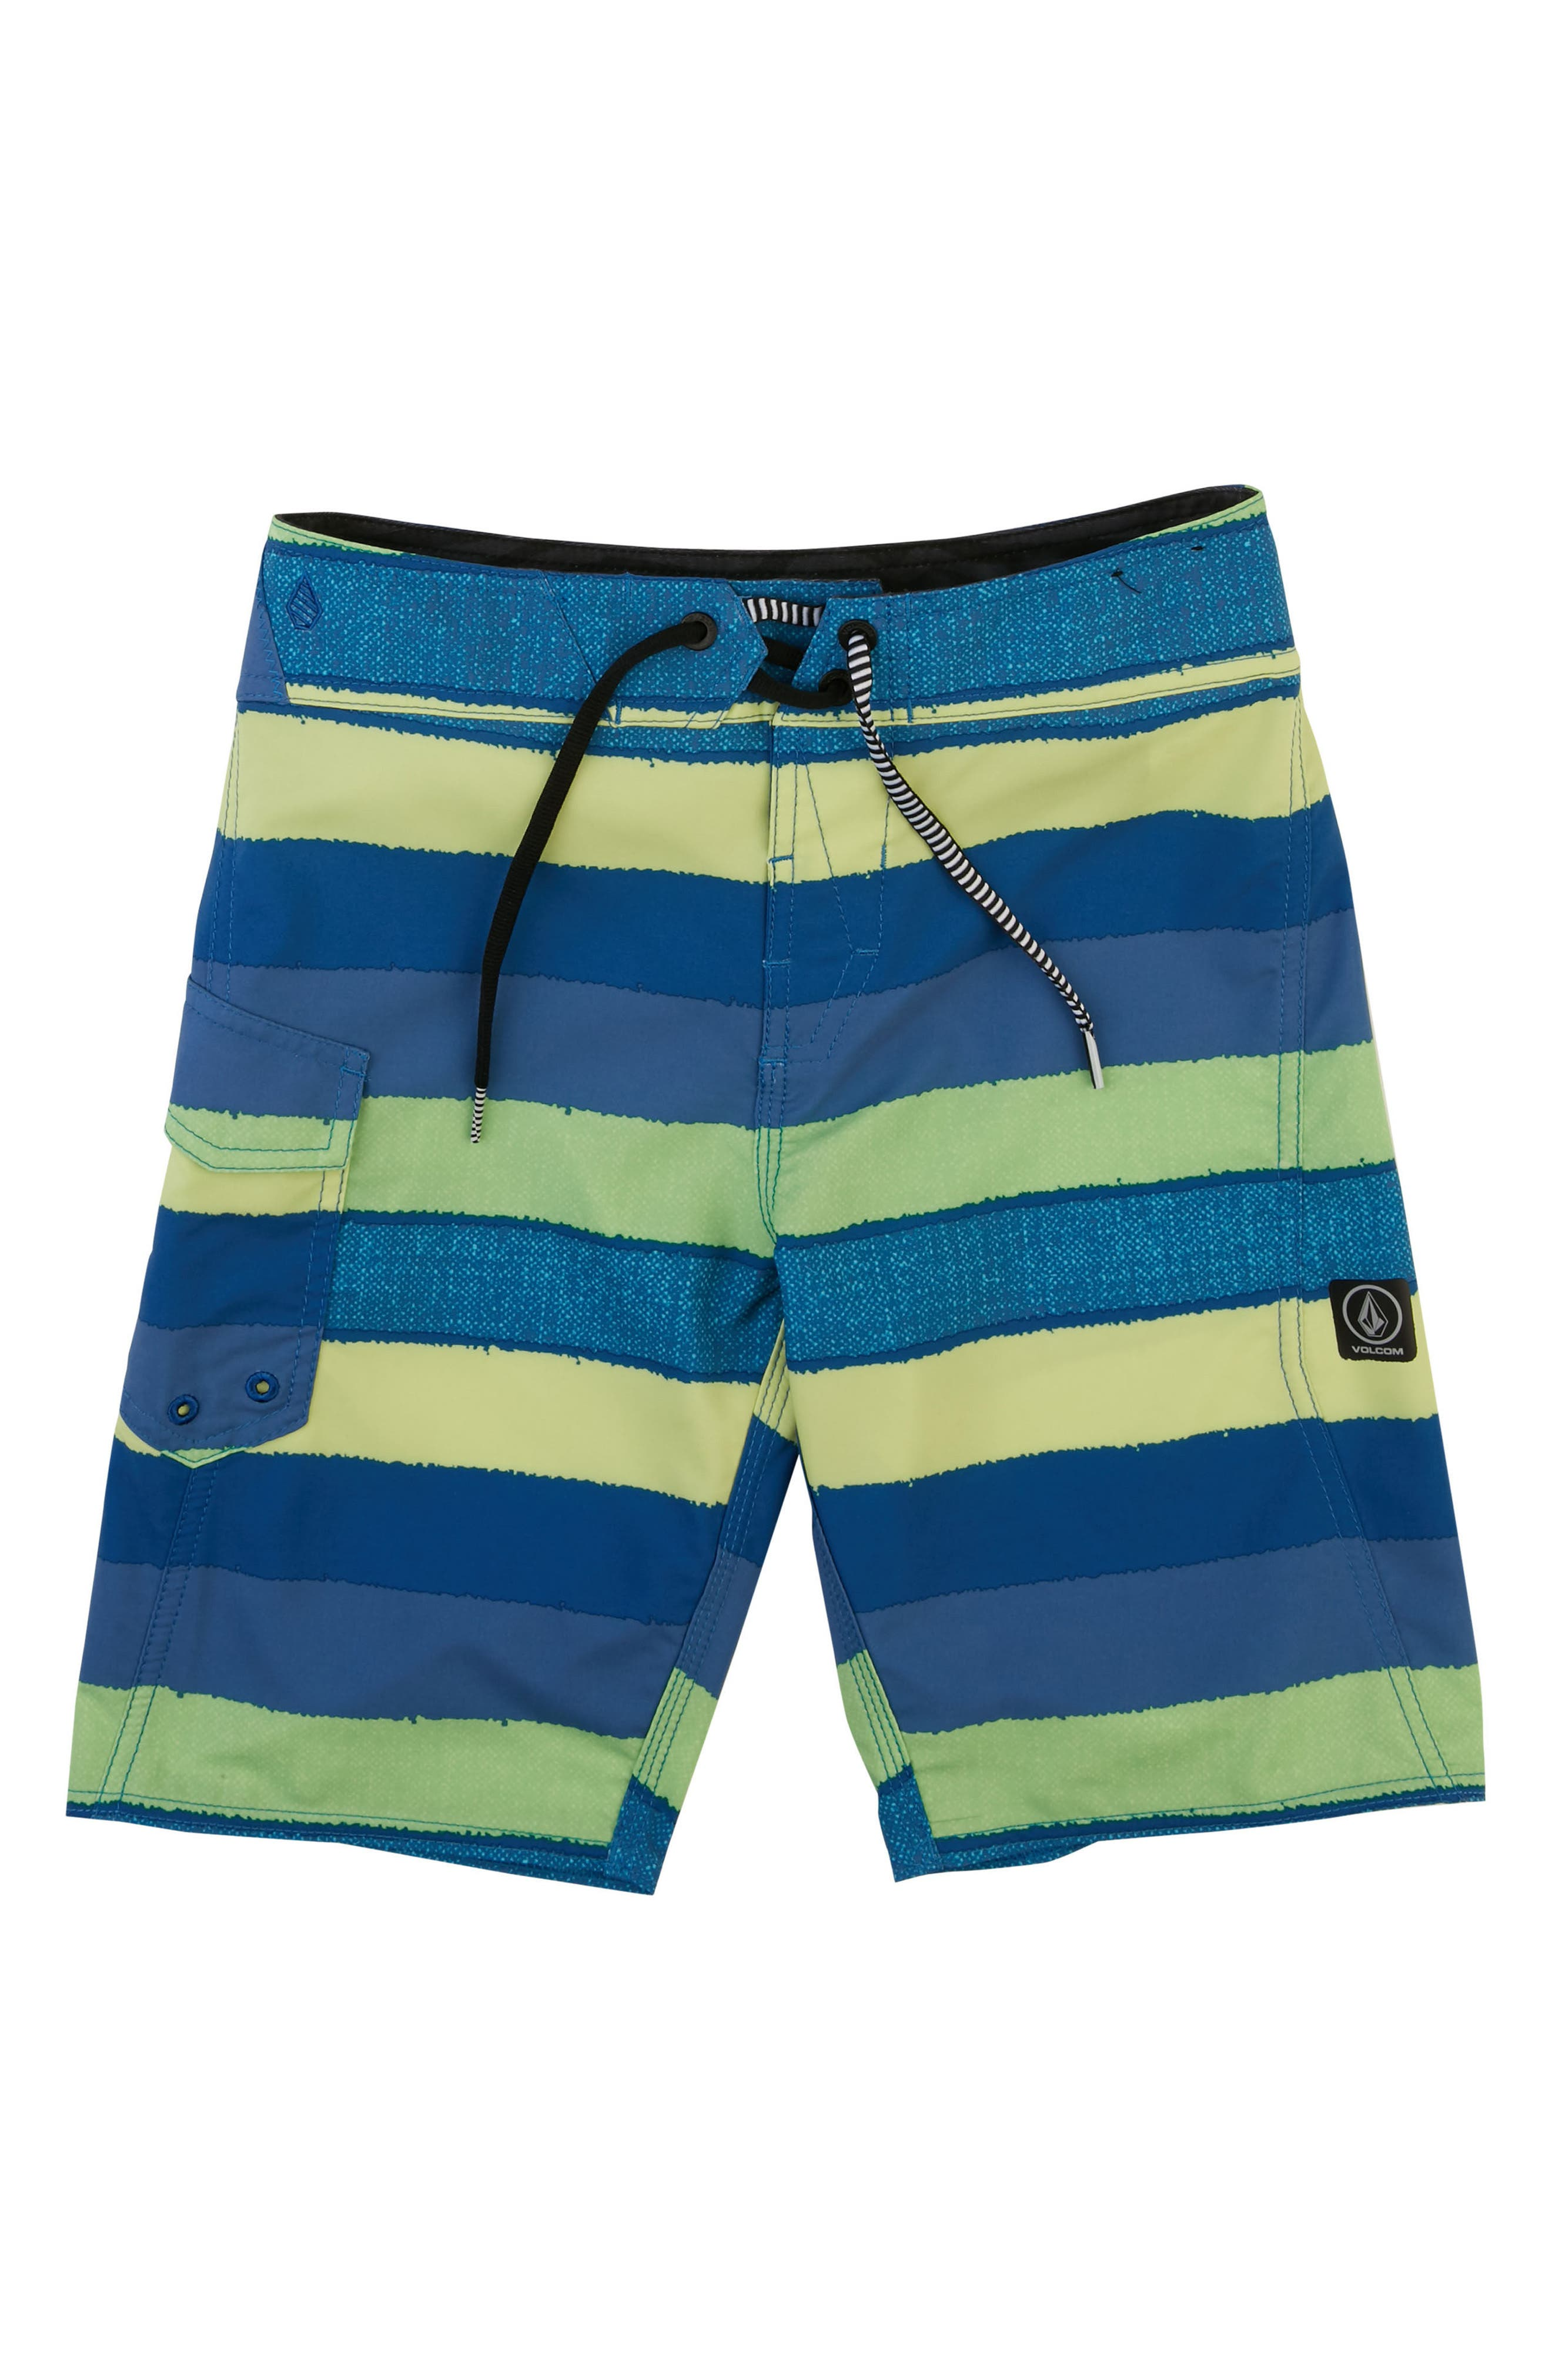 Magnetic Liney Mod Board Shorts,                         Main,                         color, Shadow Lime